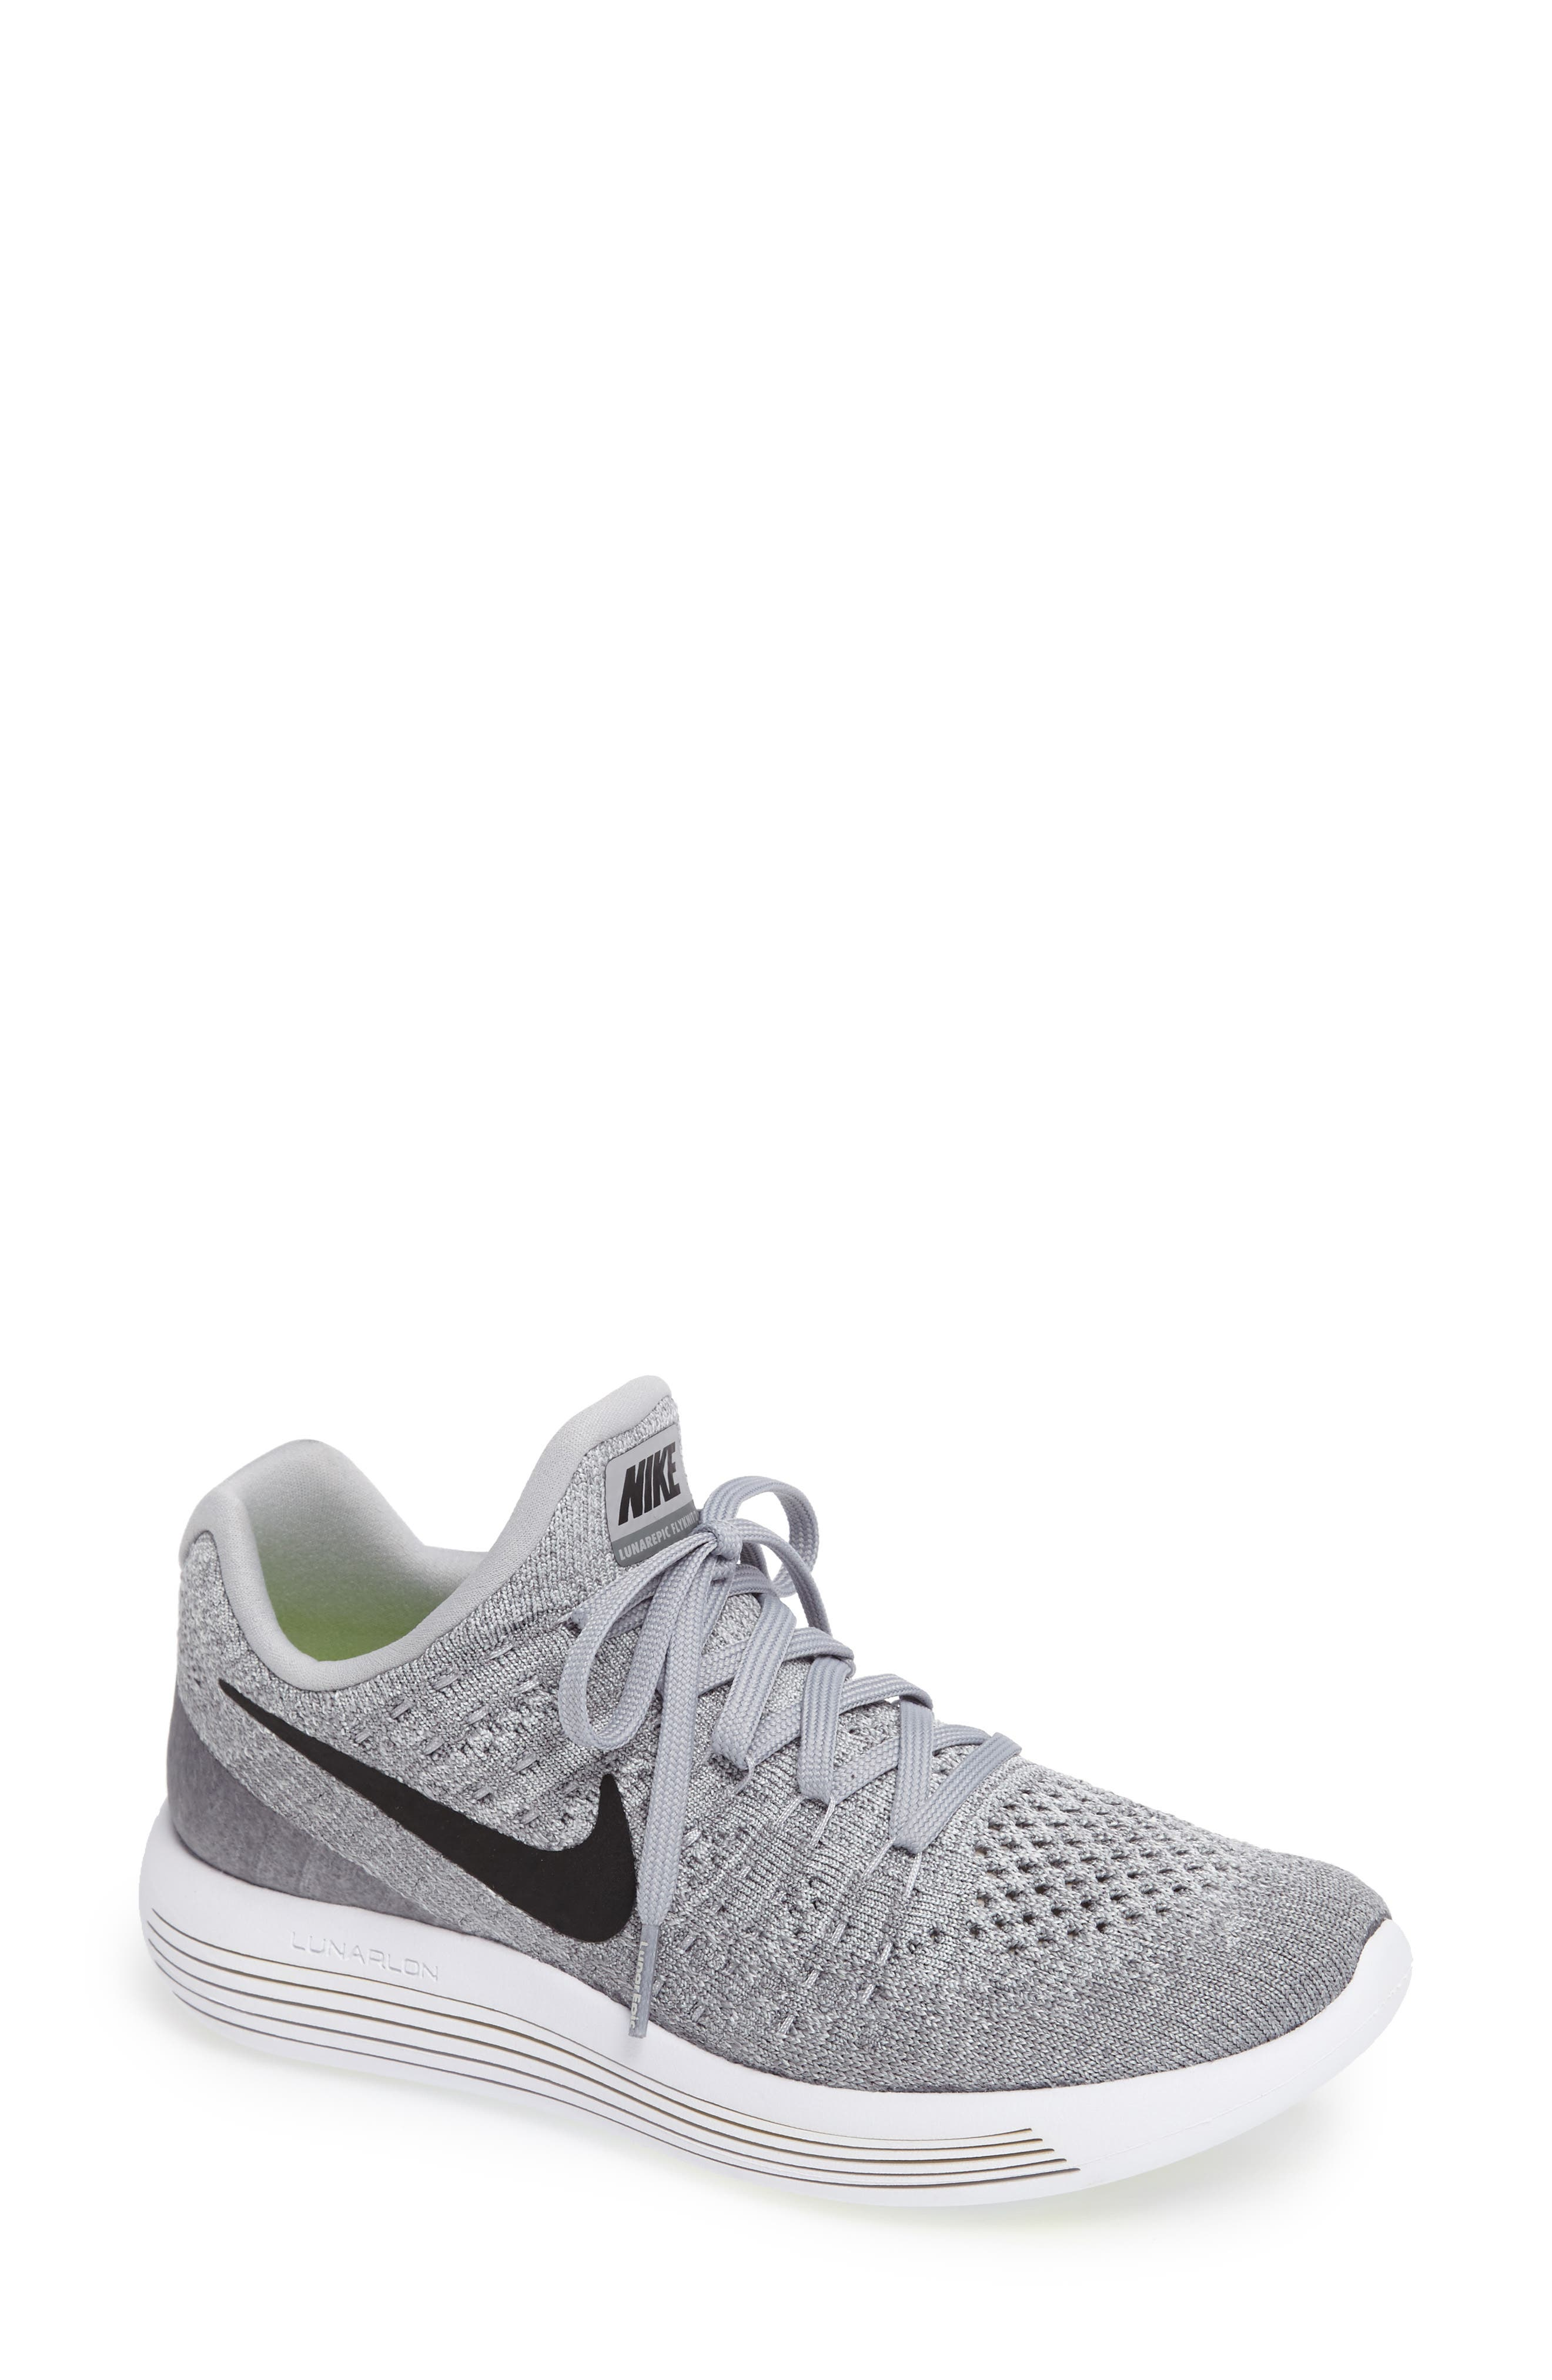 Alternate Image 1 Selected - Nike LunarEpic Low Flyknit 2 Running Shoe (Women)